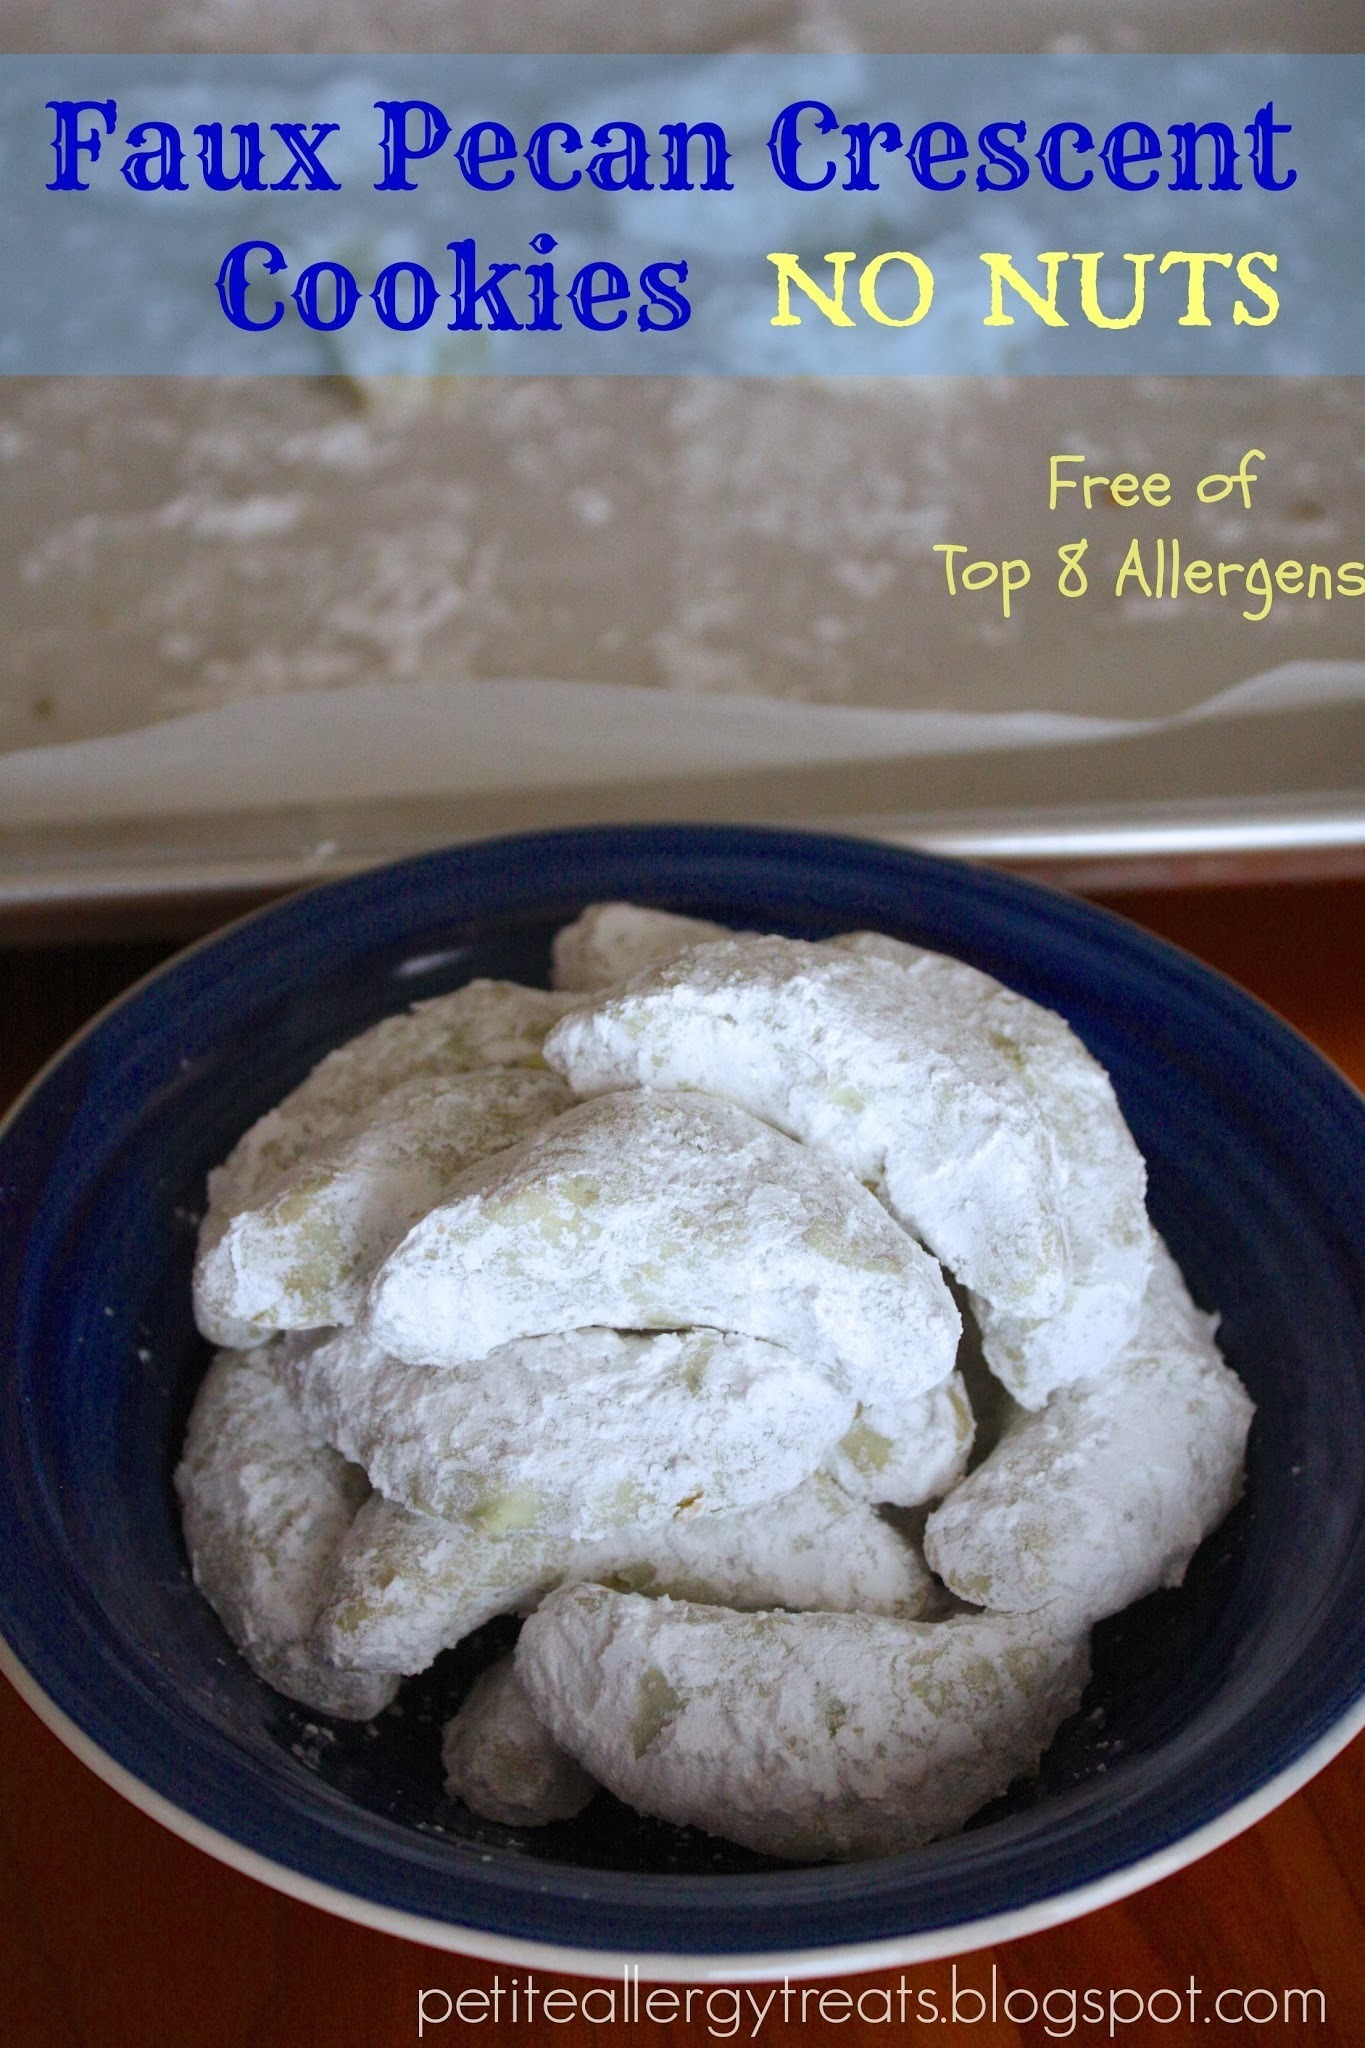 GF Faux Pecan Crescents Free of Top 8 Food Allergens